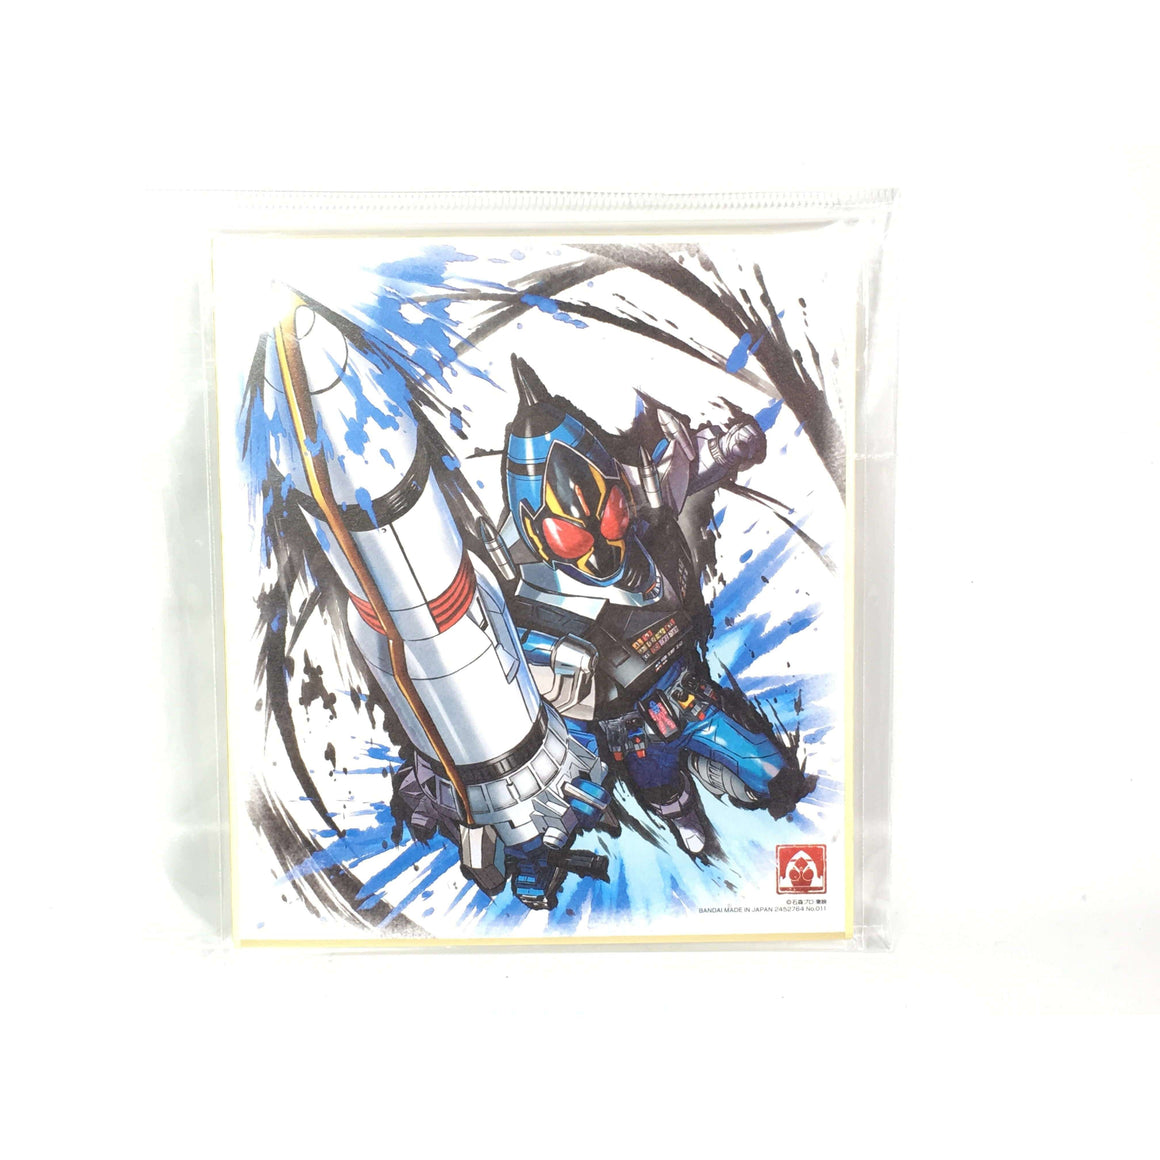 CSTOYS INTERNATIONAL:[LOOSE] Kamen Rider Shikishi Art - Kamen Rider Fourze Cosmic States